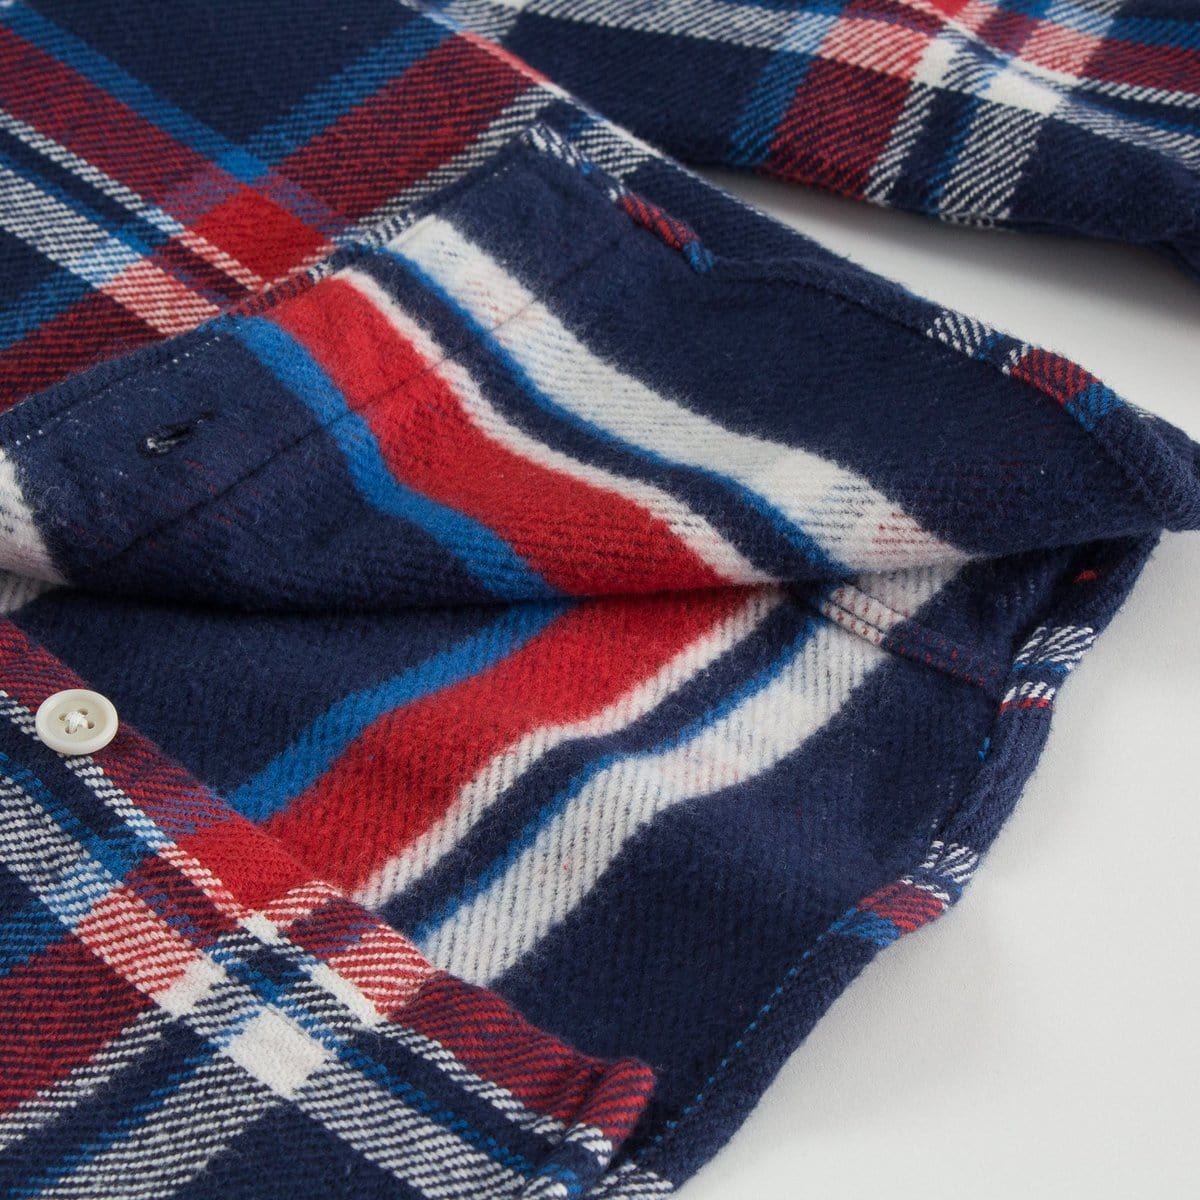 Blanket Plaid Navy